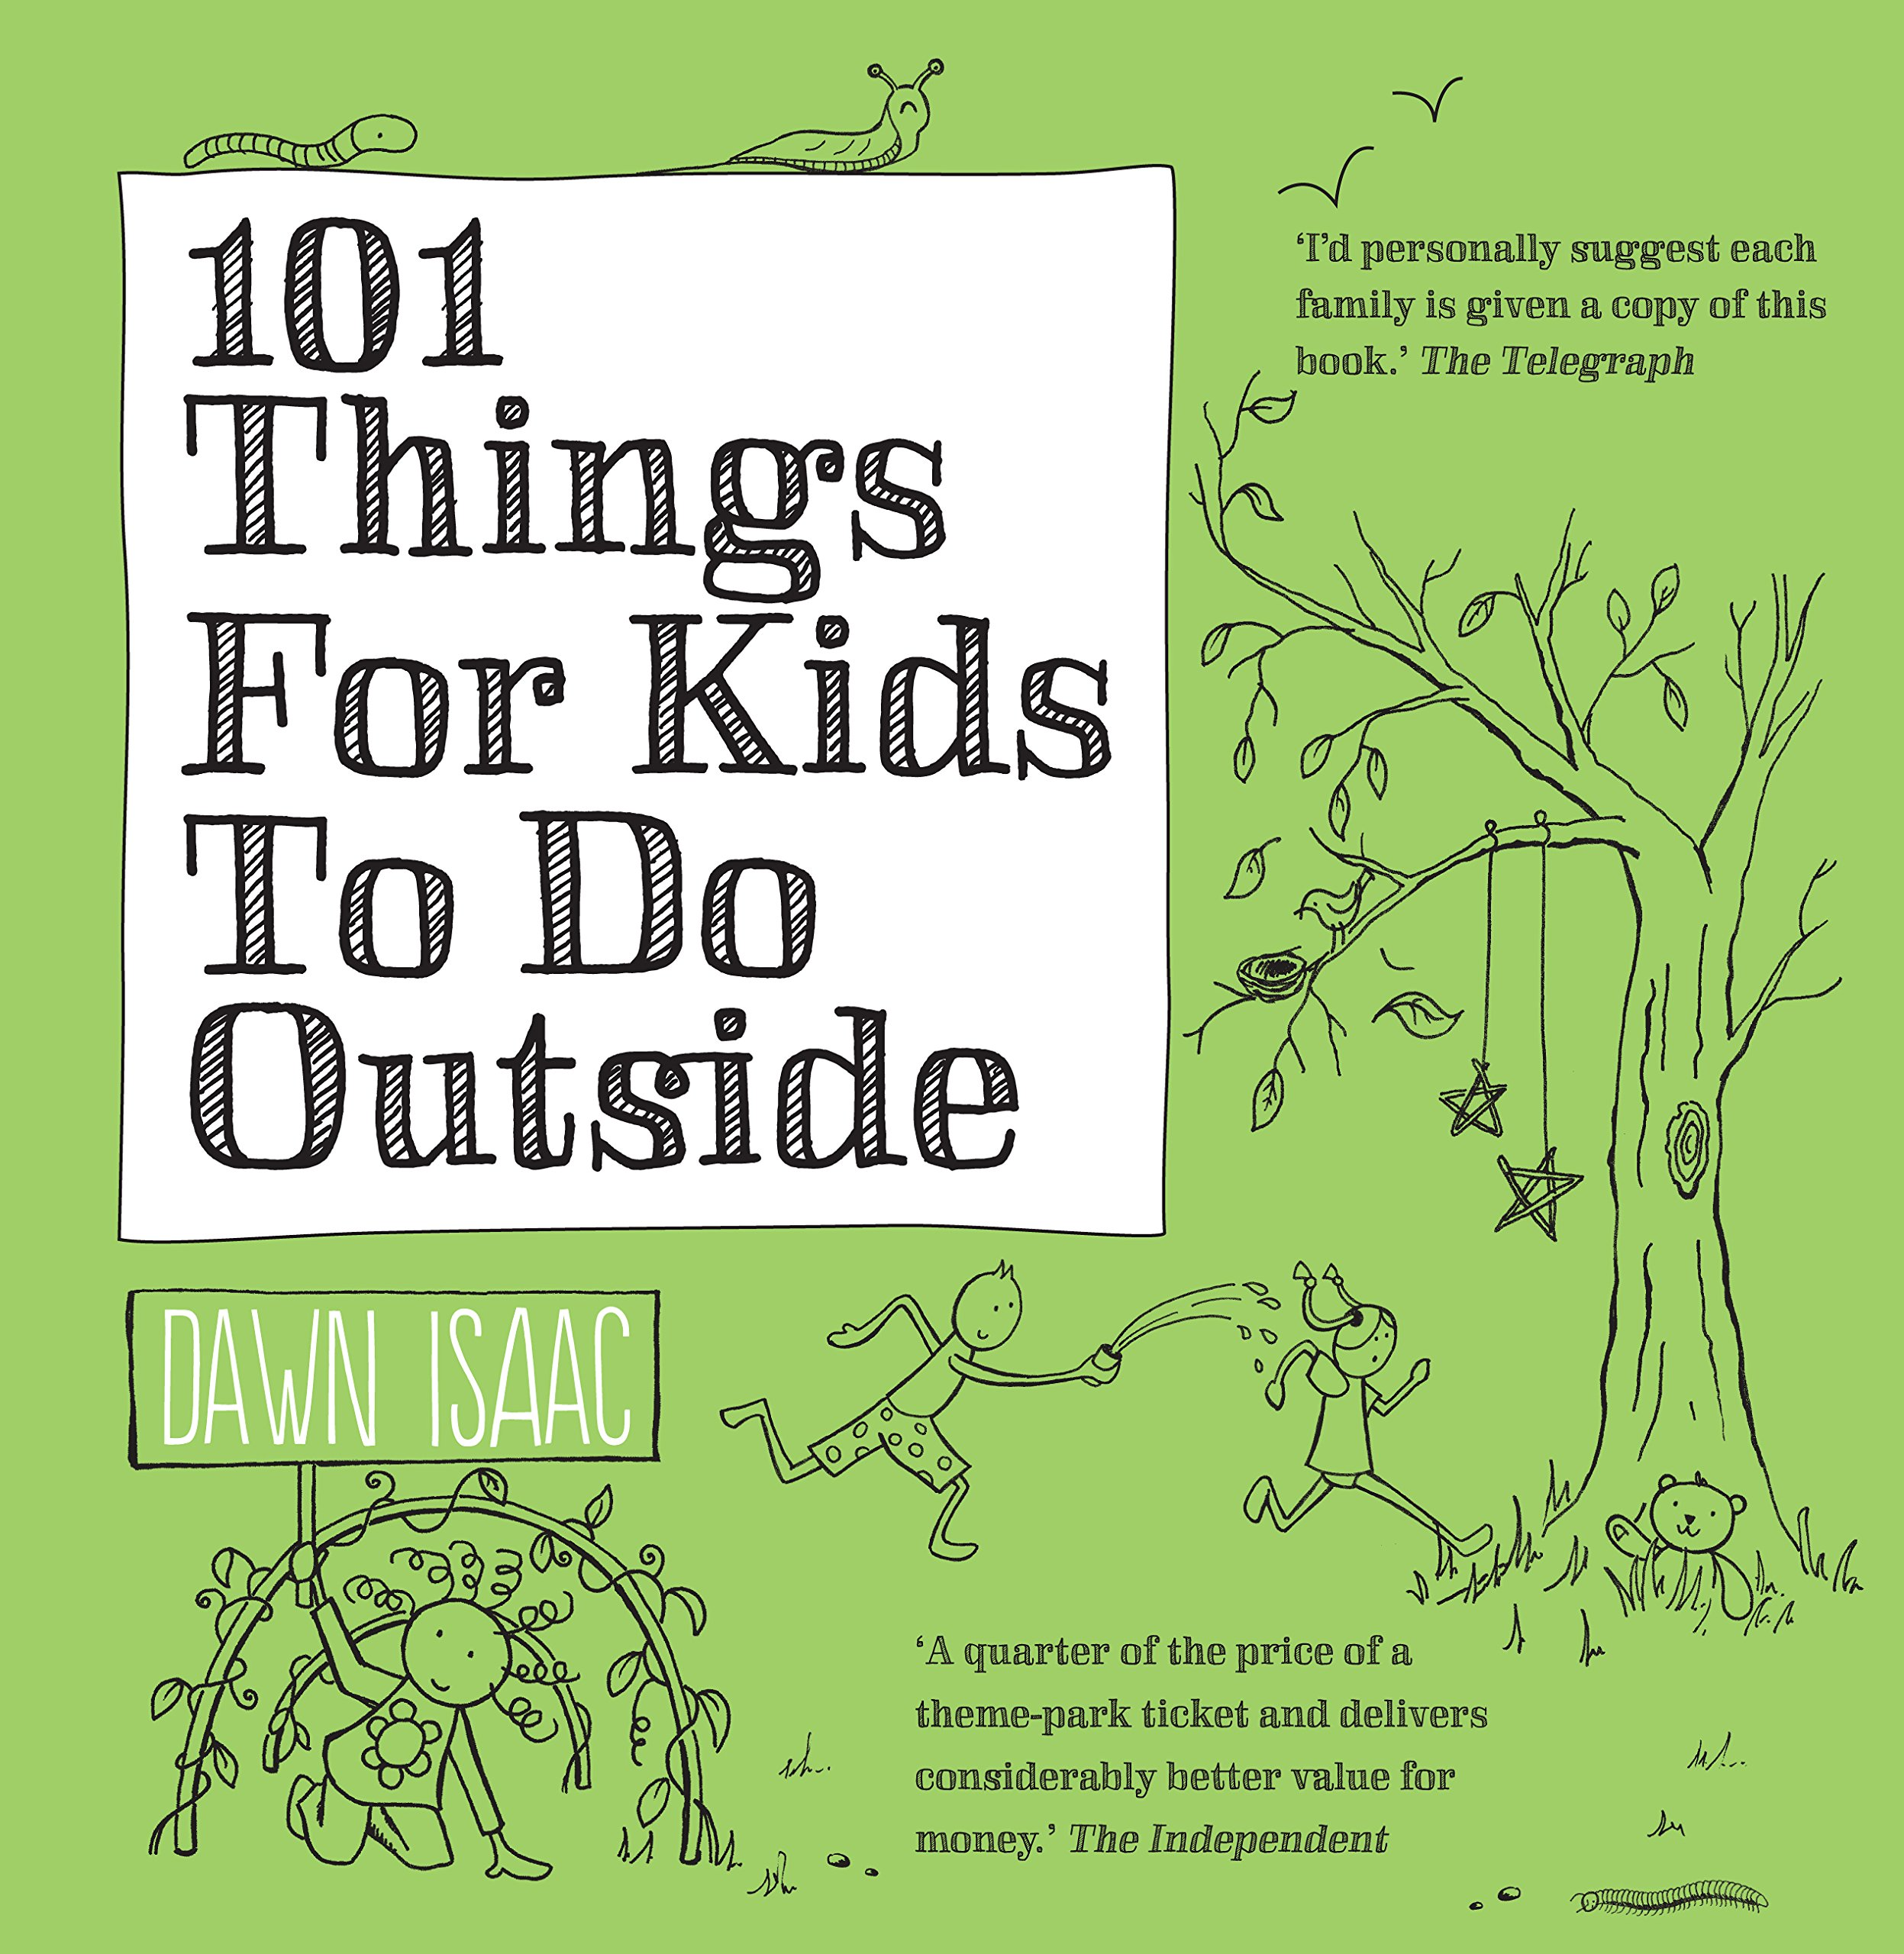 101 things for kids to do outside amazon co uk dawn isaac